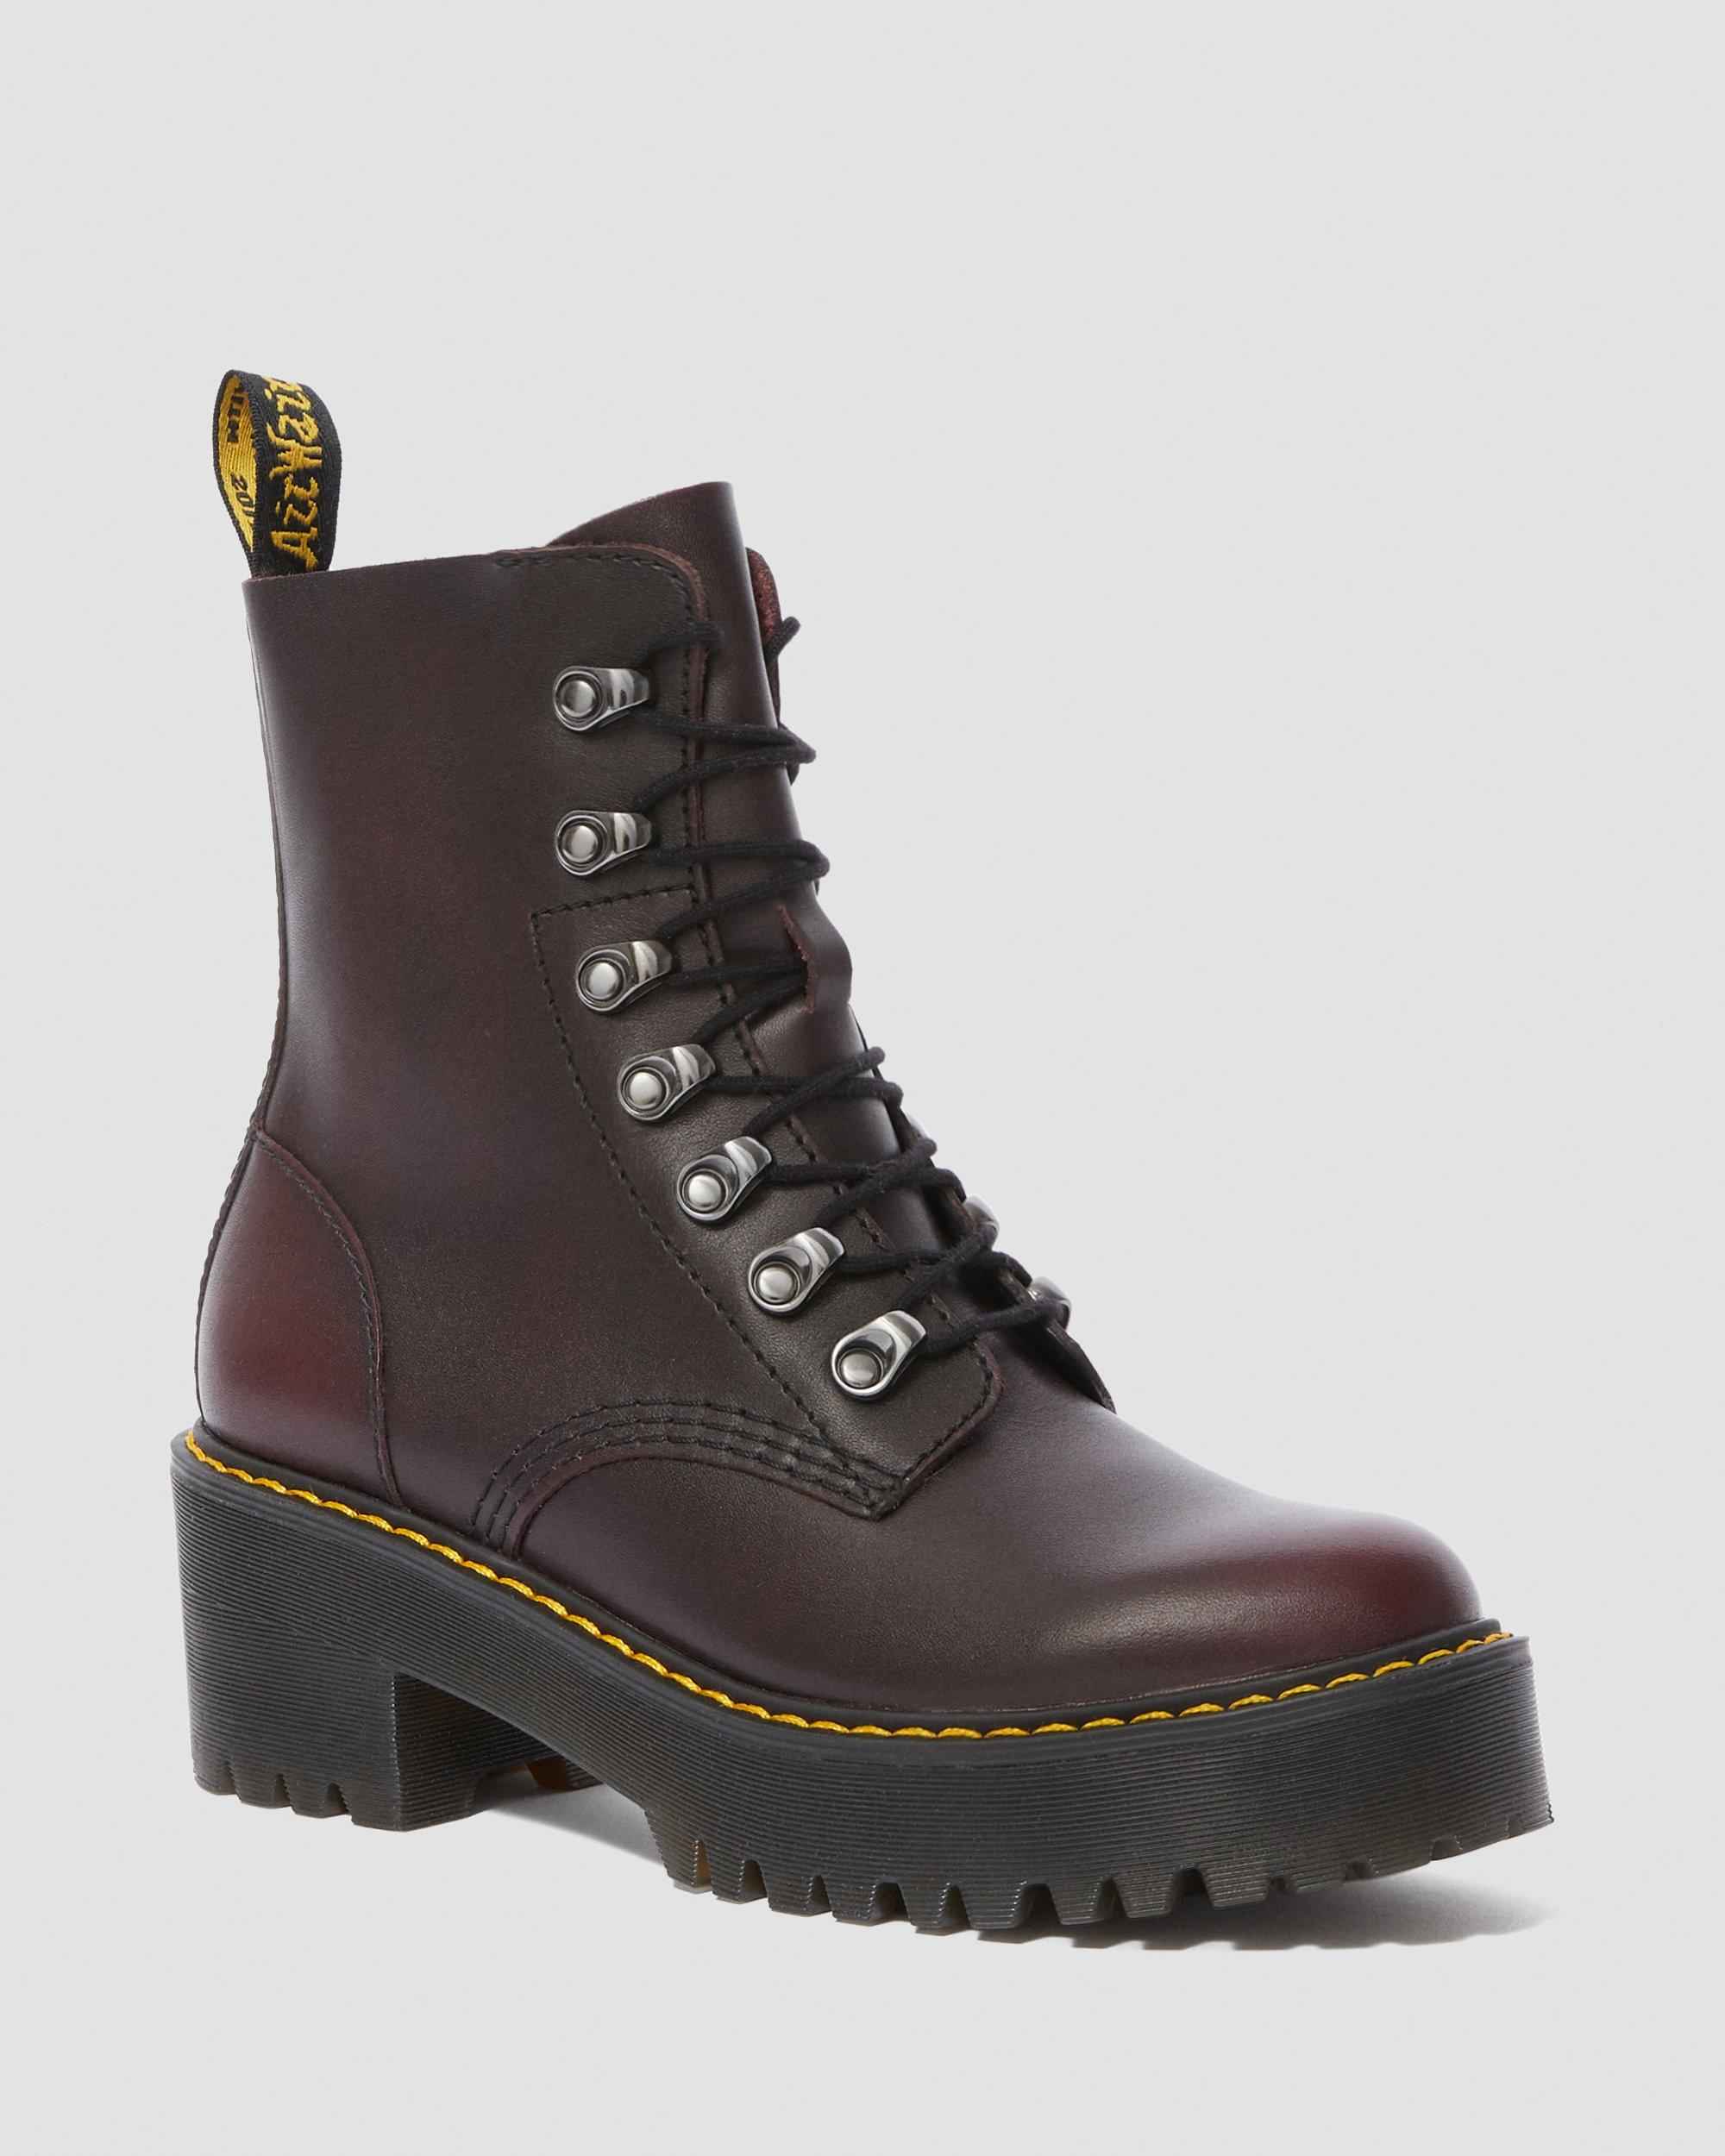 Womens Boots | Leather, Vegan & Heeled Boots | Dr Martens UK